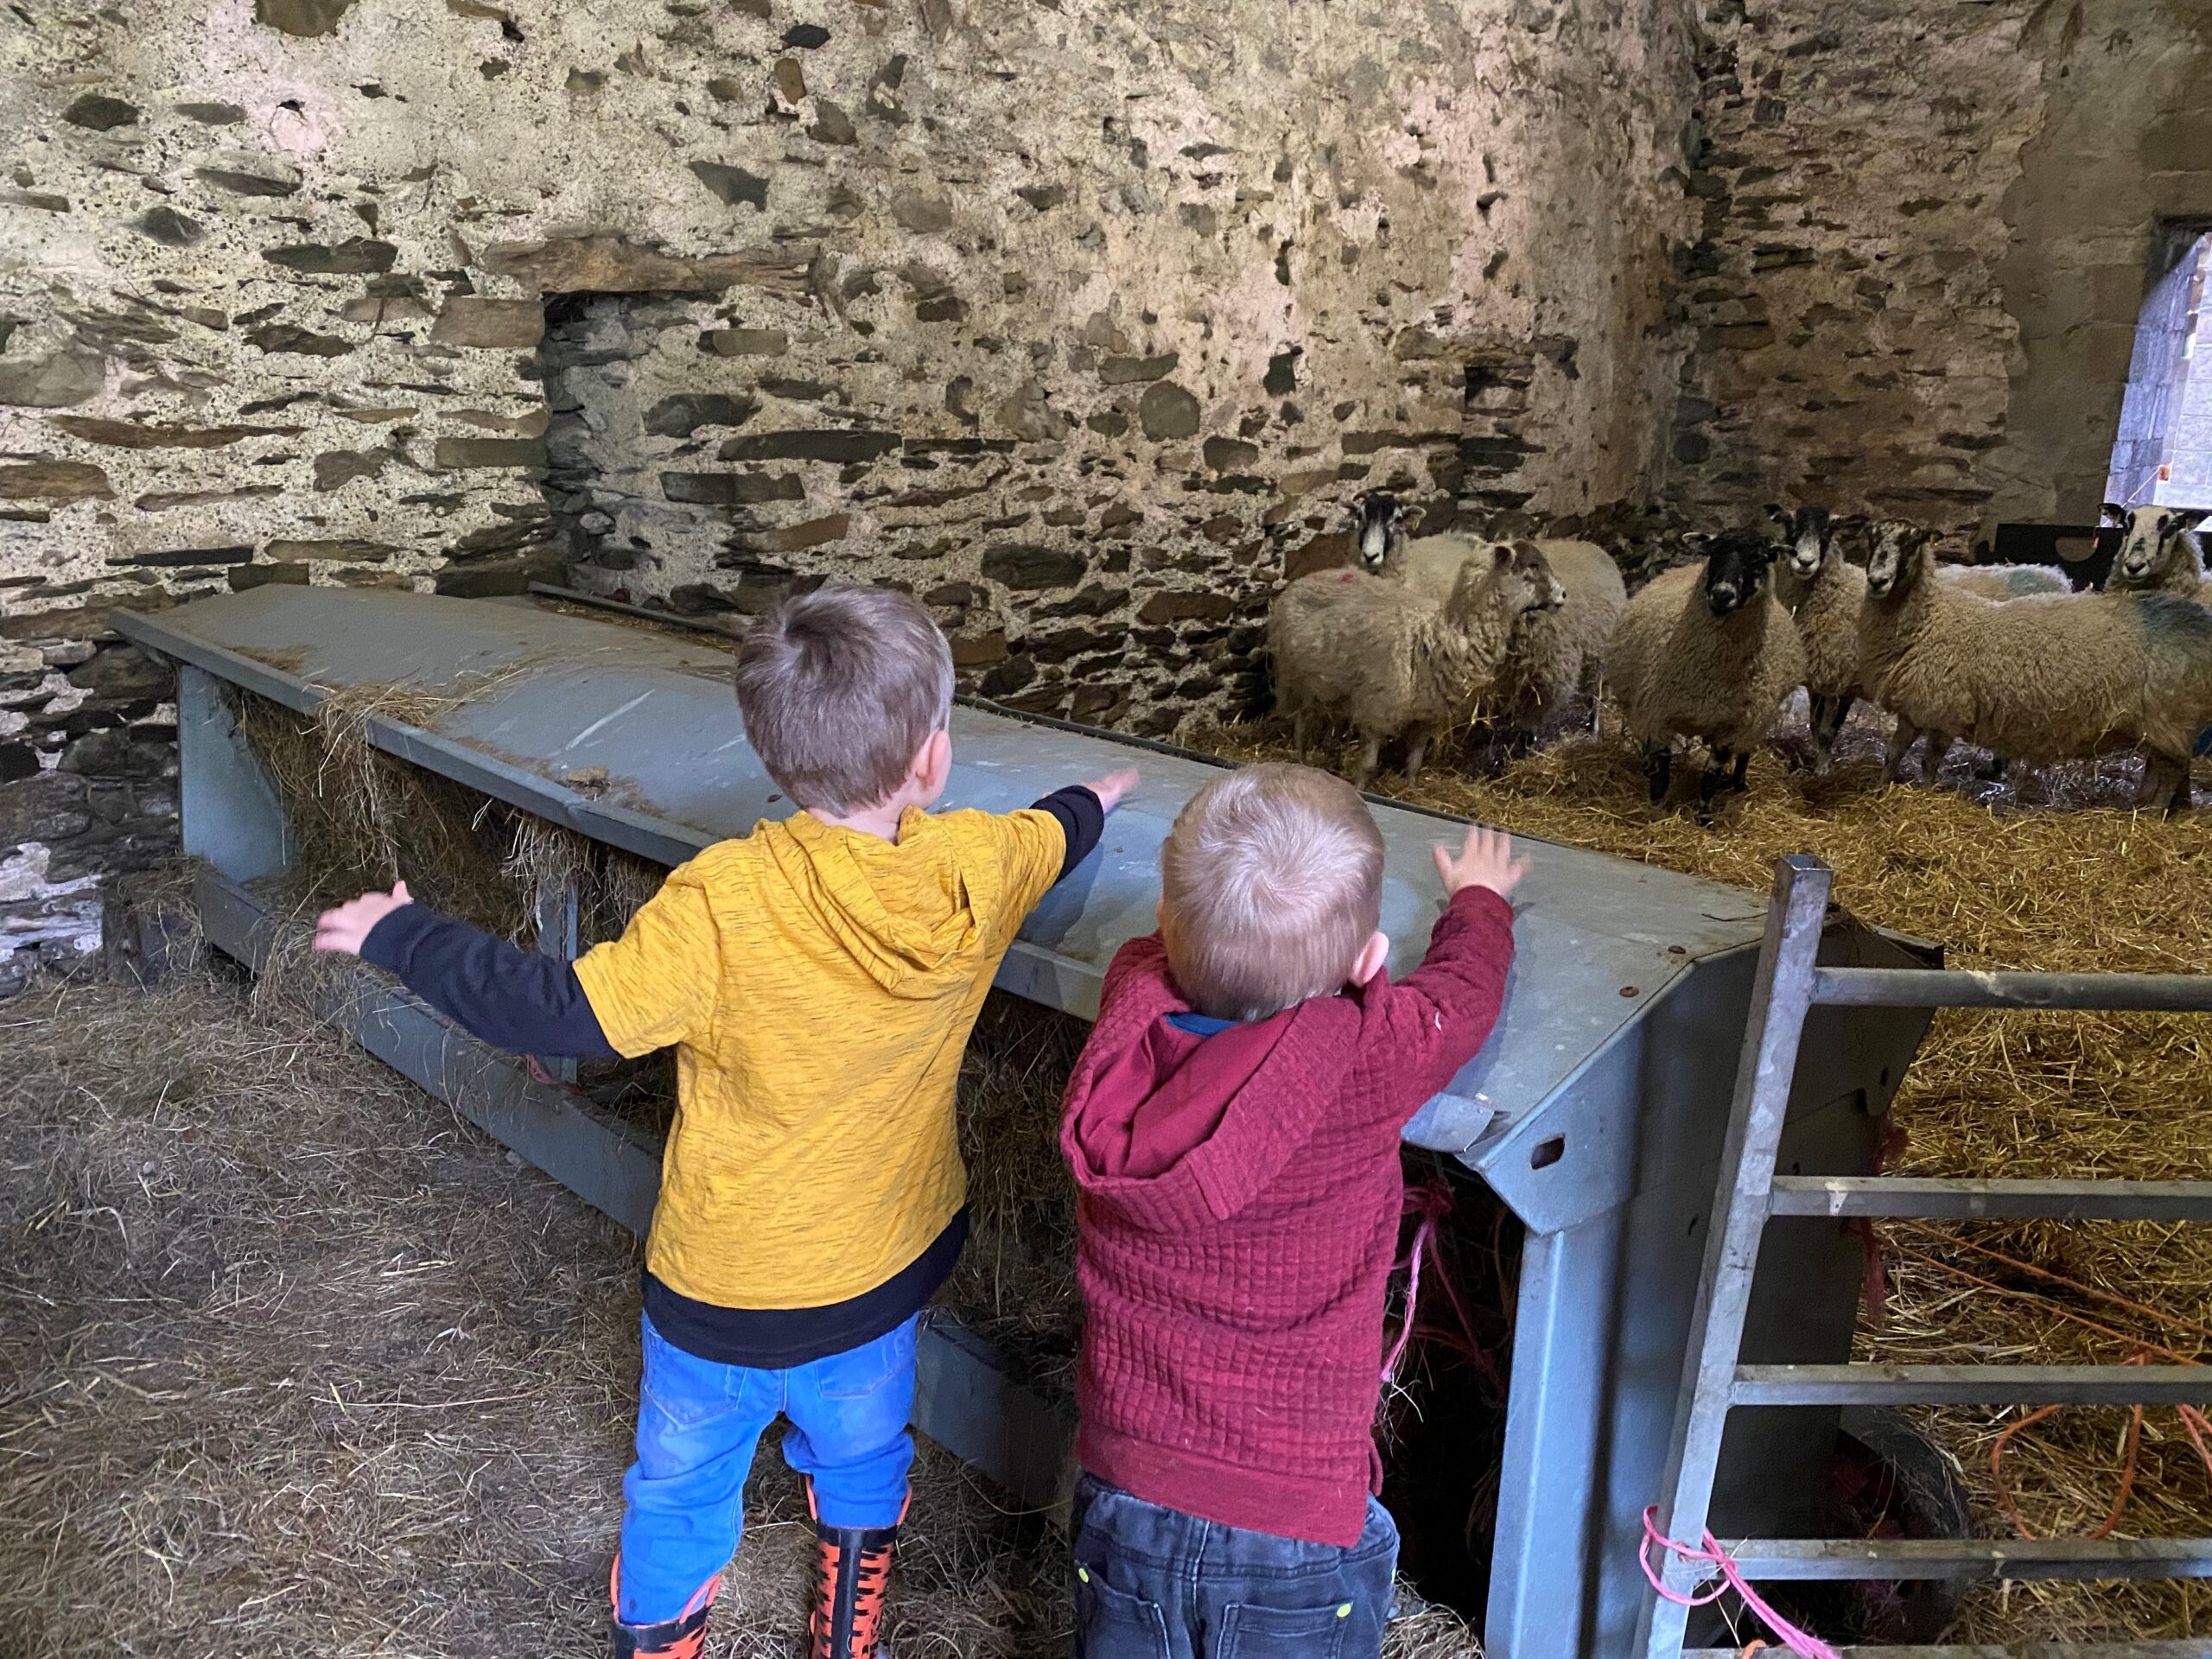 2 boys in the farm pointing at sheep